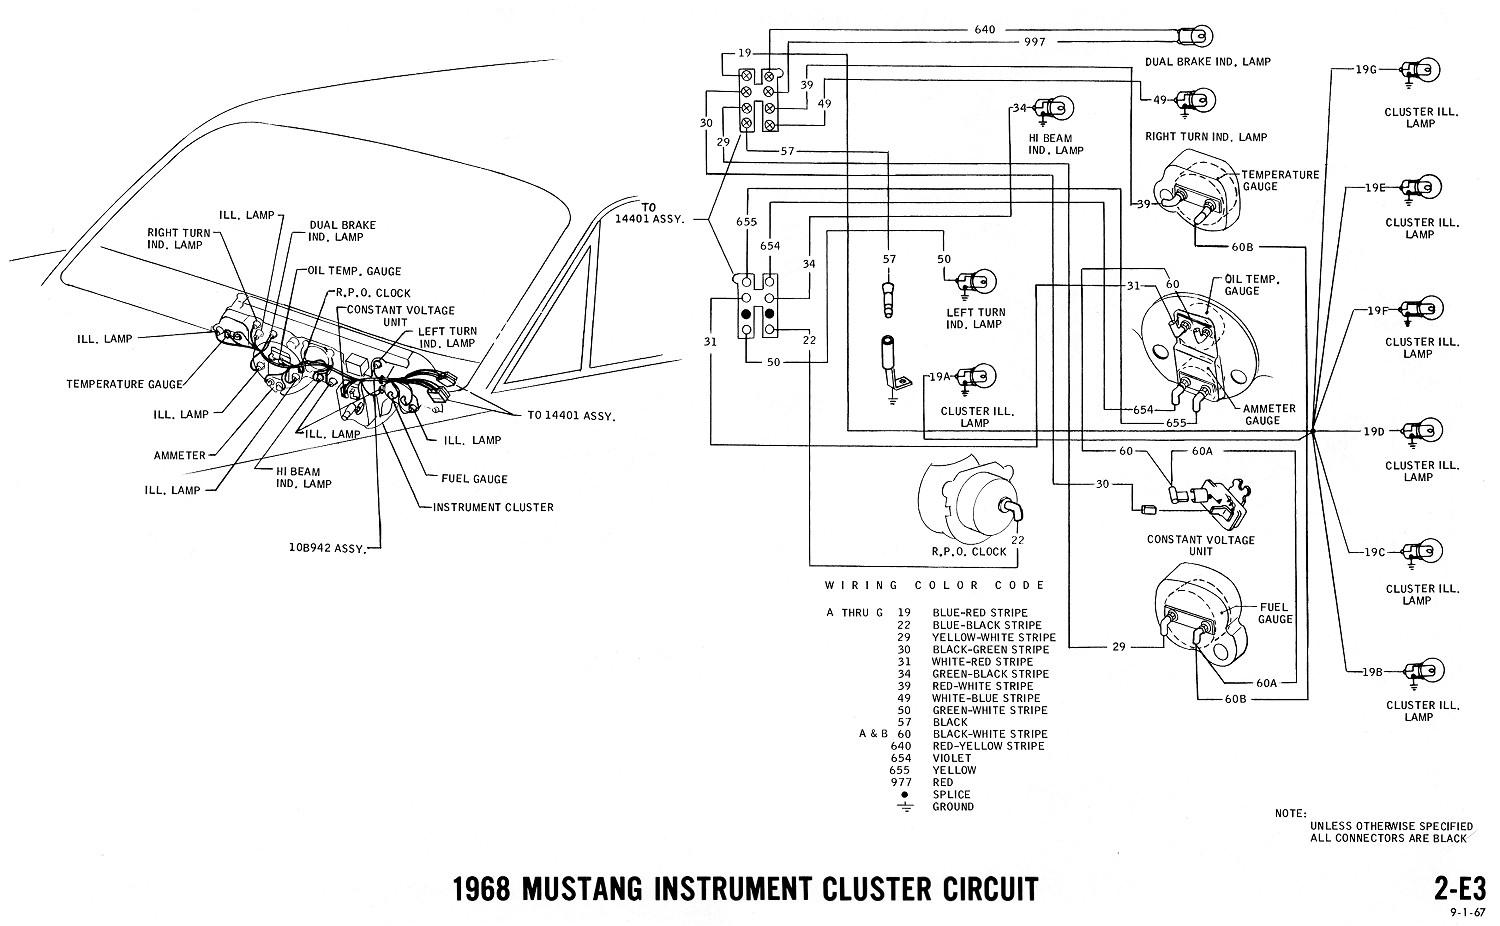 68 mustang instrument wiring diagram - wiring diagram wood-teta -  wood-teta.disnar.it  disnar.it